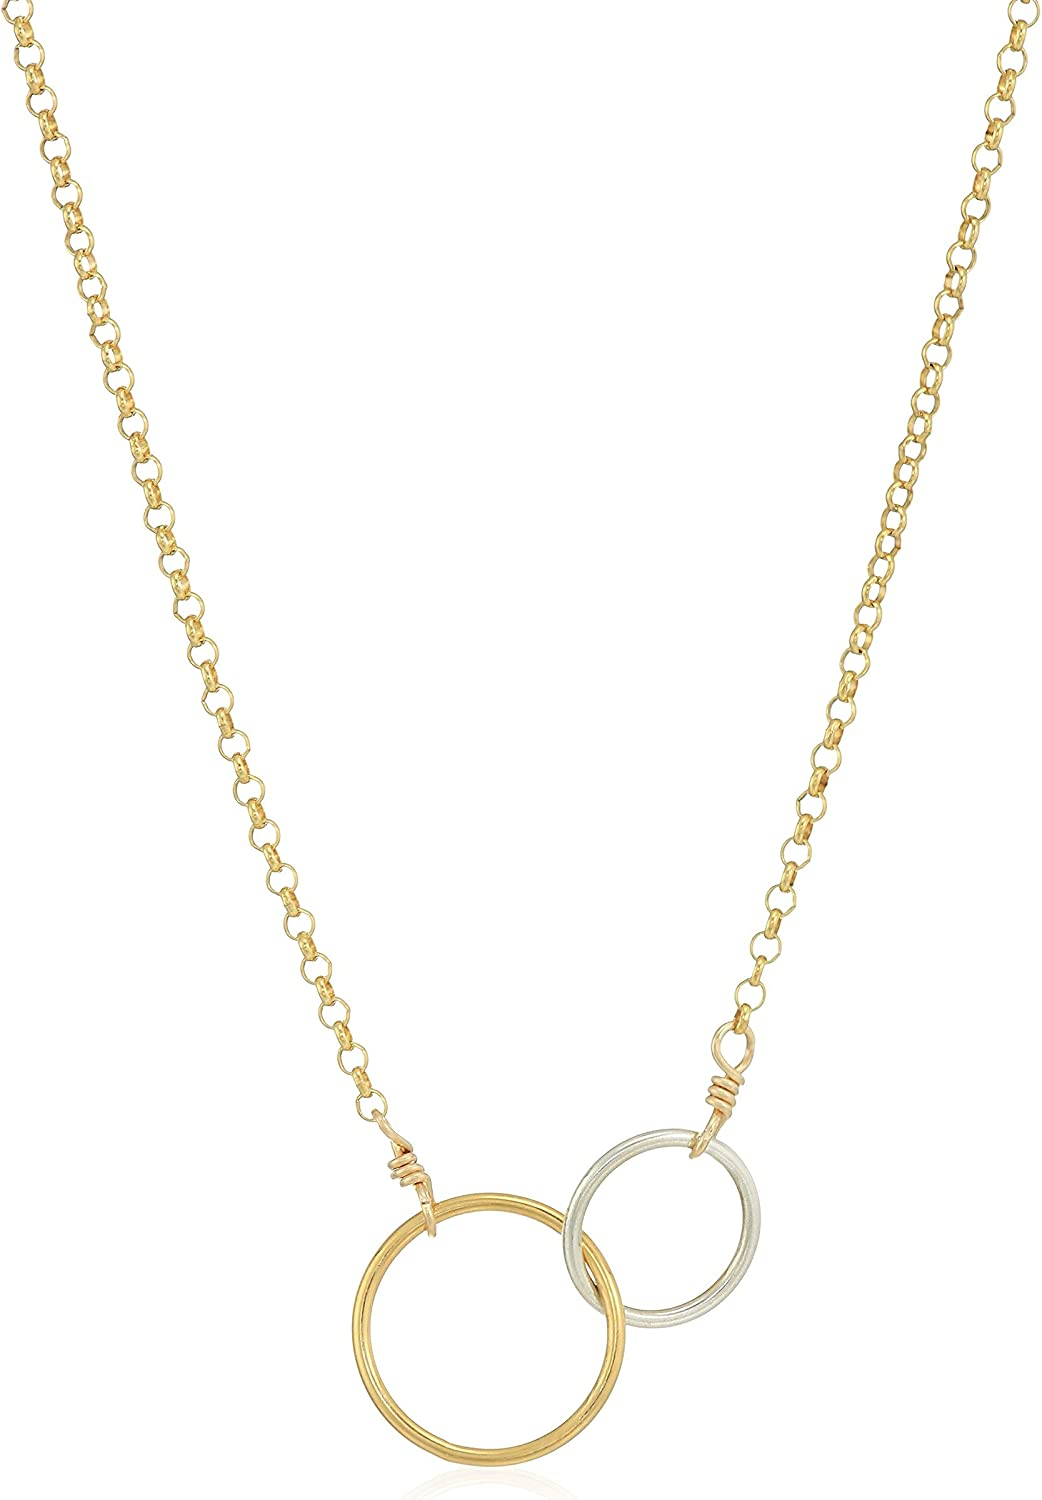 Dogeared Women's Friends for Life, Two Mixed Metal Linked Rings Necklace